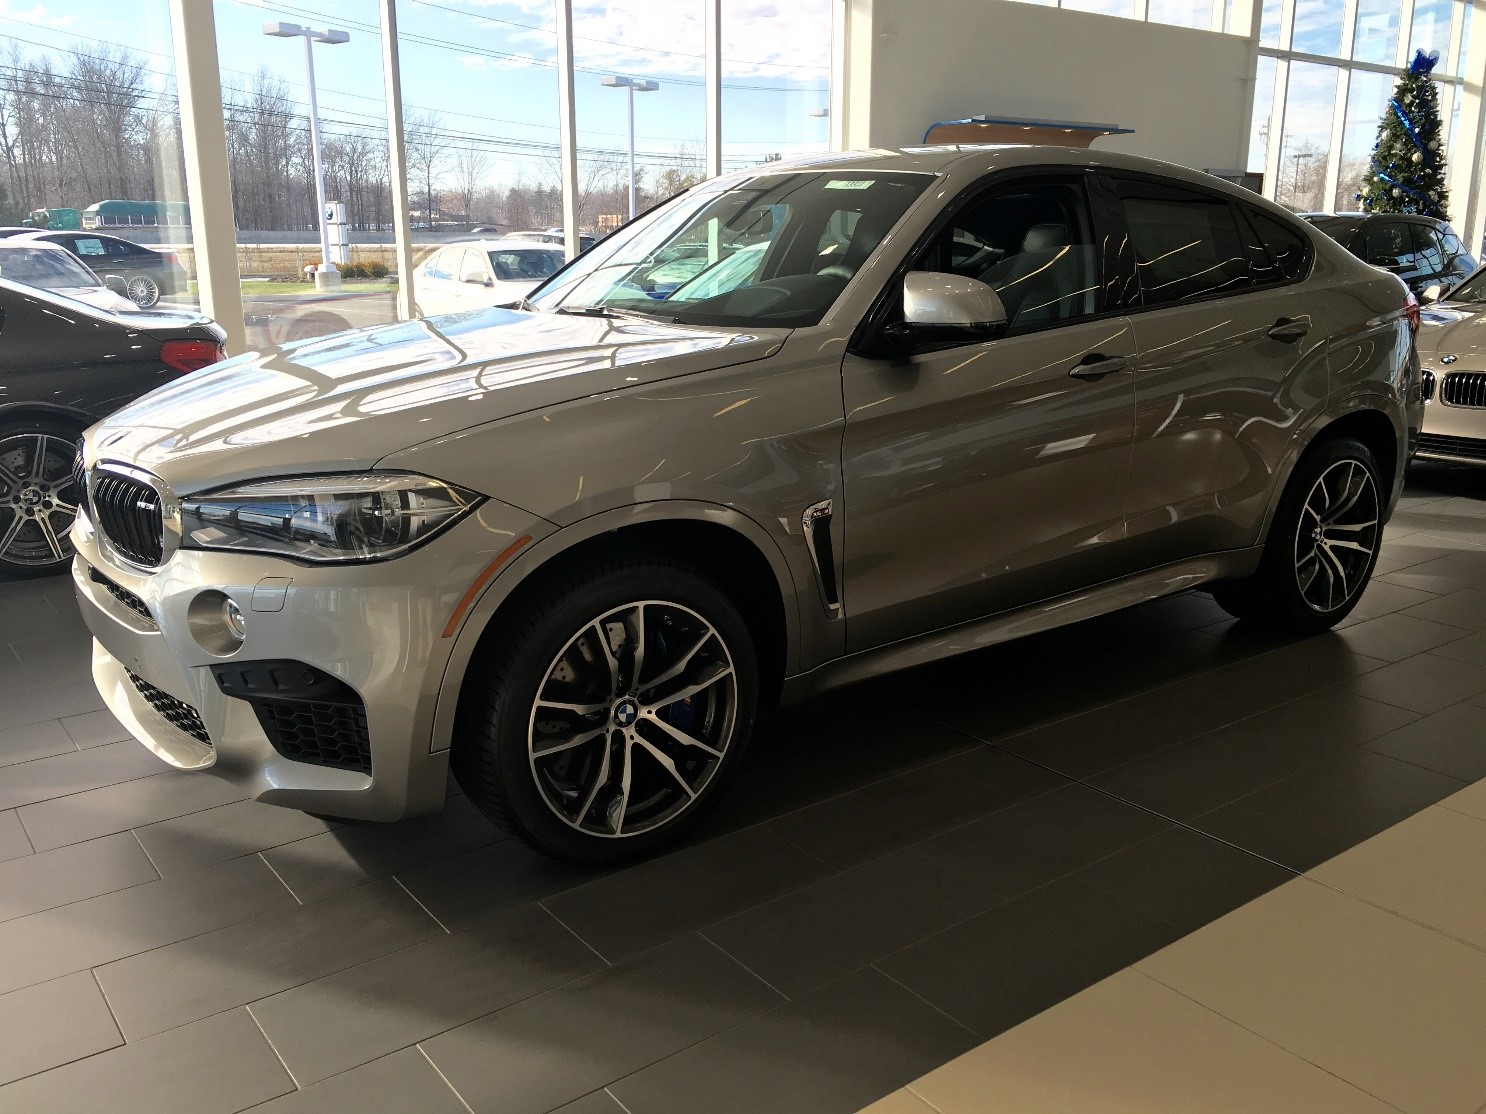 Its Stylish Exterior In Donington Gray Metallic And Comfortable Interior With Black Nappa Leather Make It Hard To Not Love Living Day